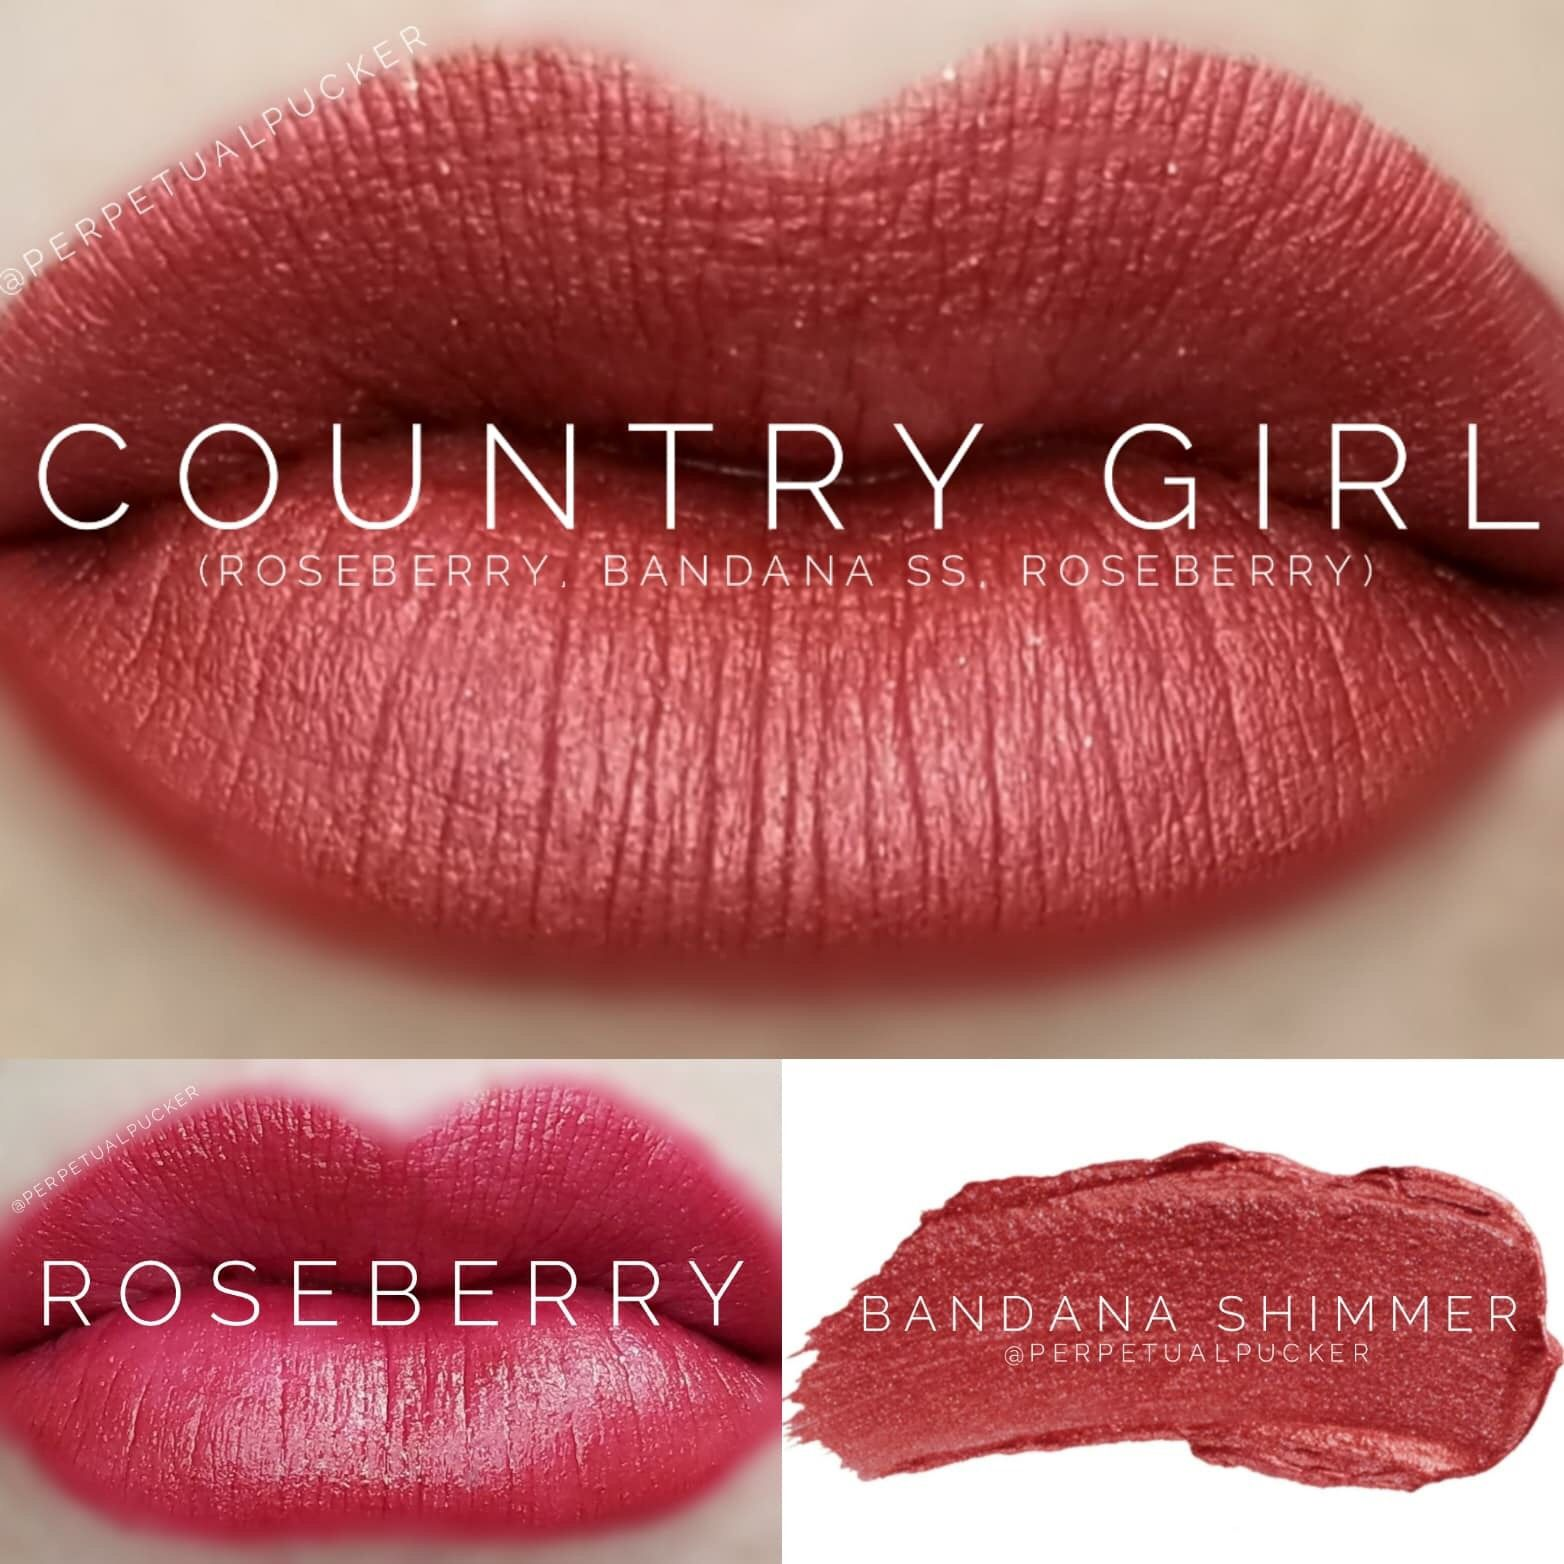 This gorgeous combo features the limited edition Bandana Shimmer ShadowSense layered between Roseberry LipSense